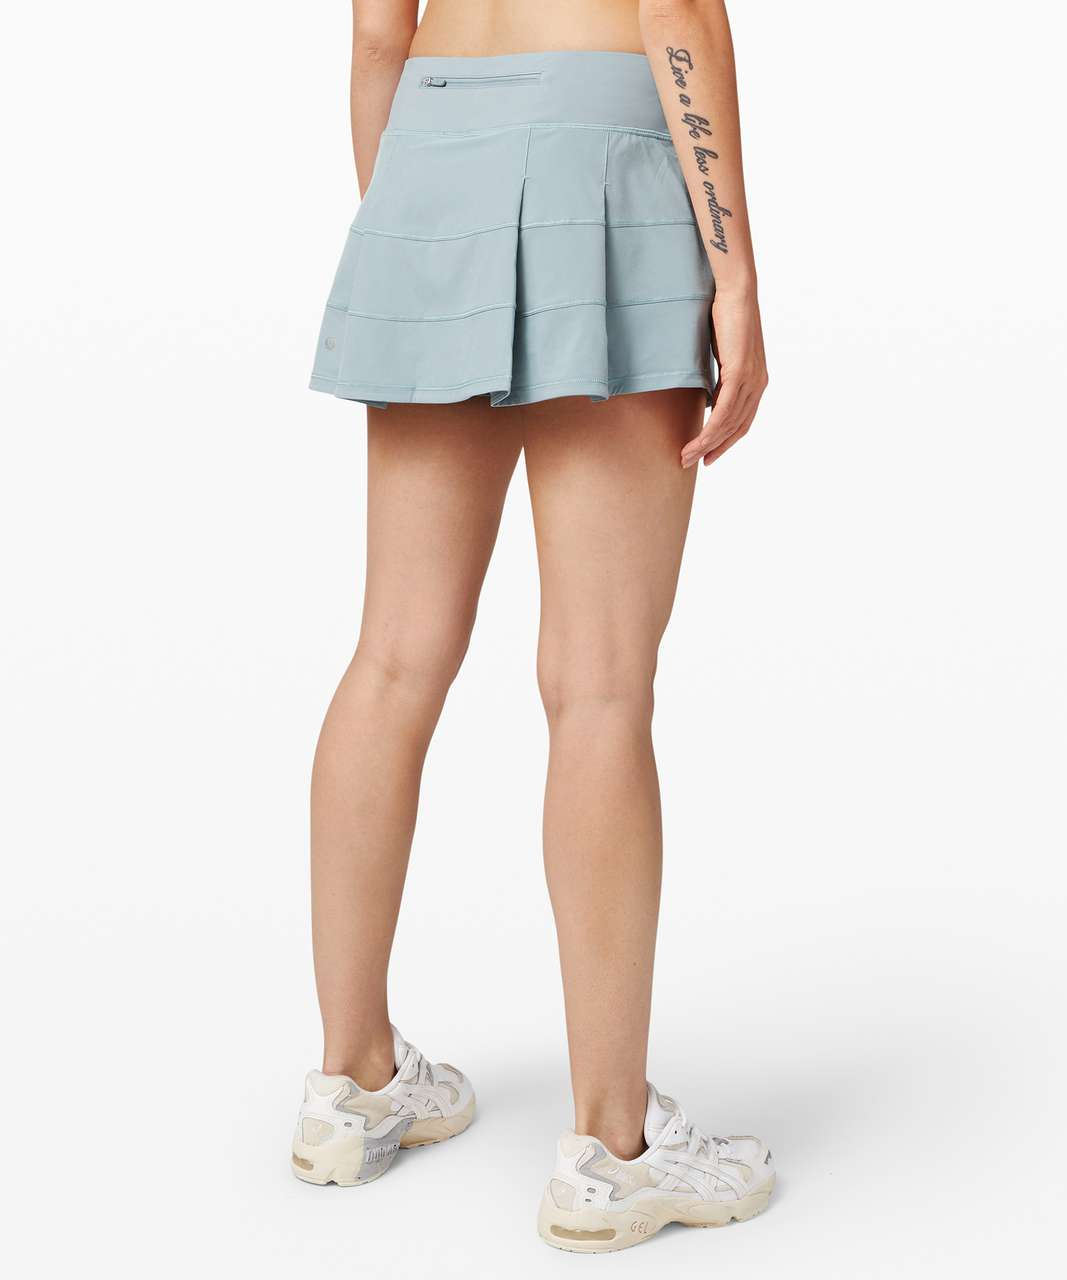 "Lululemon Pace Rival Skirt (Regular) *4-way Stretch 13"" - Blue Cast"